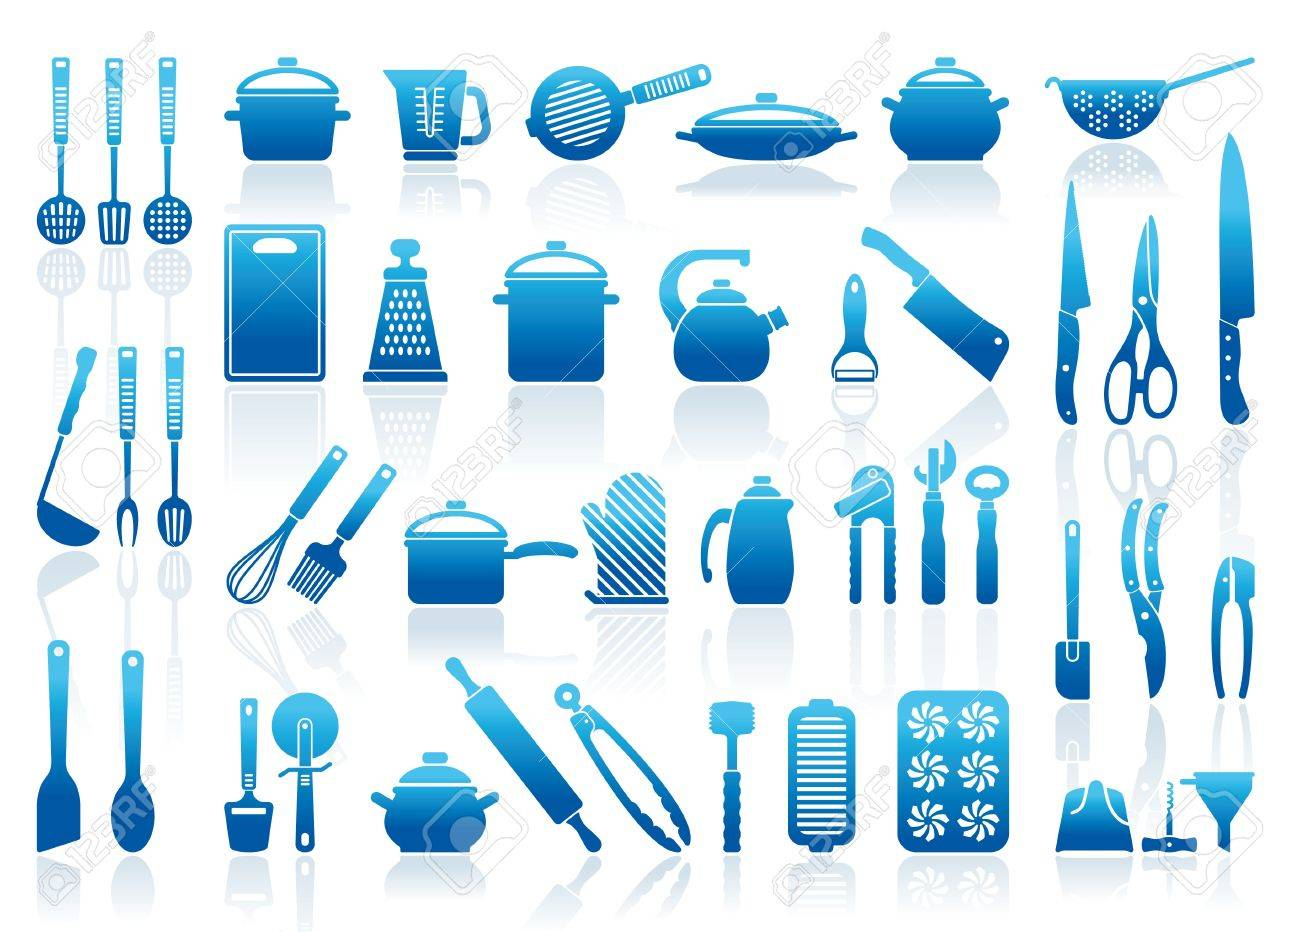 Icons of kitchen ware, utensils and tools Stock Vector - 17921882